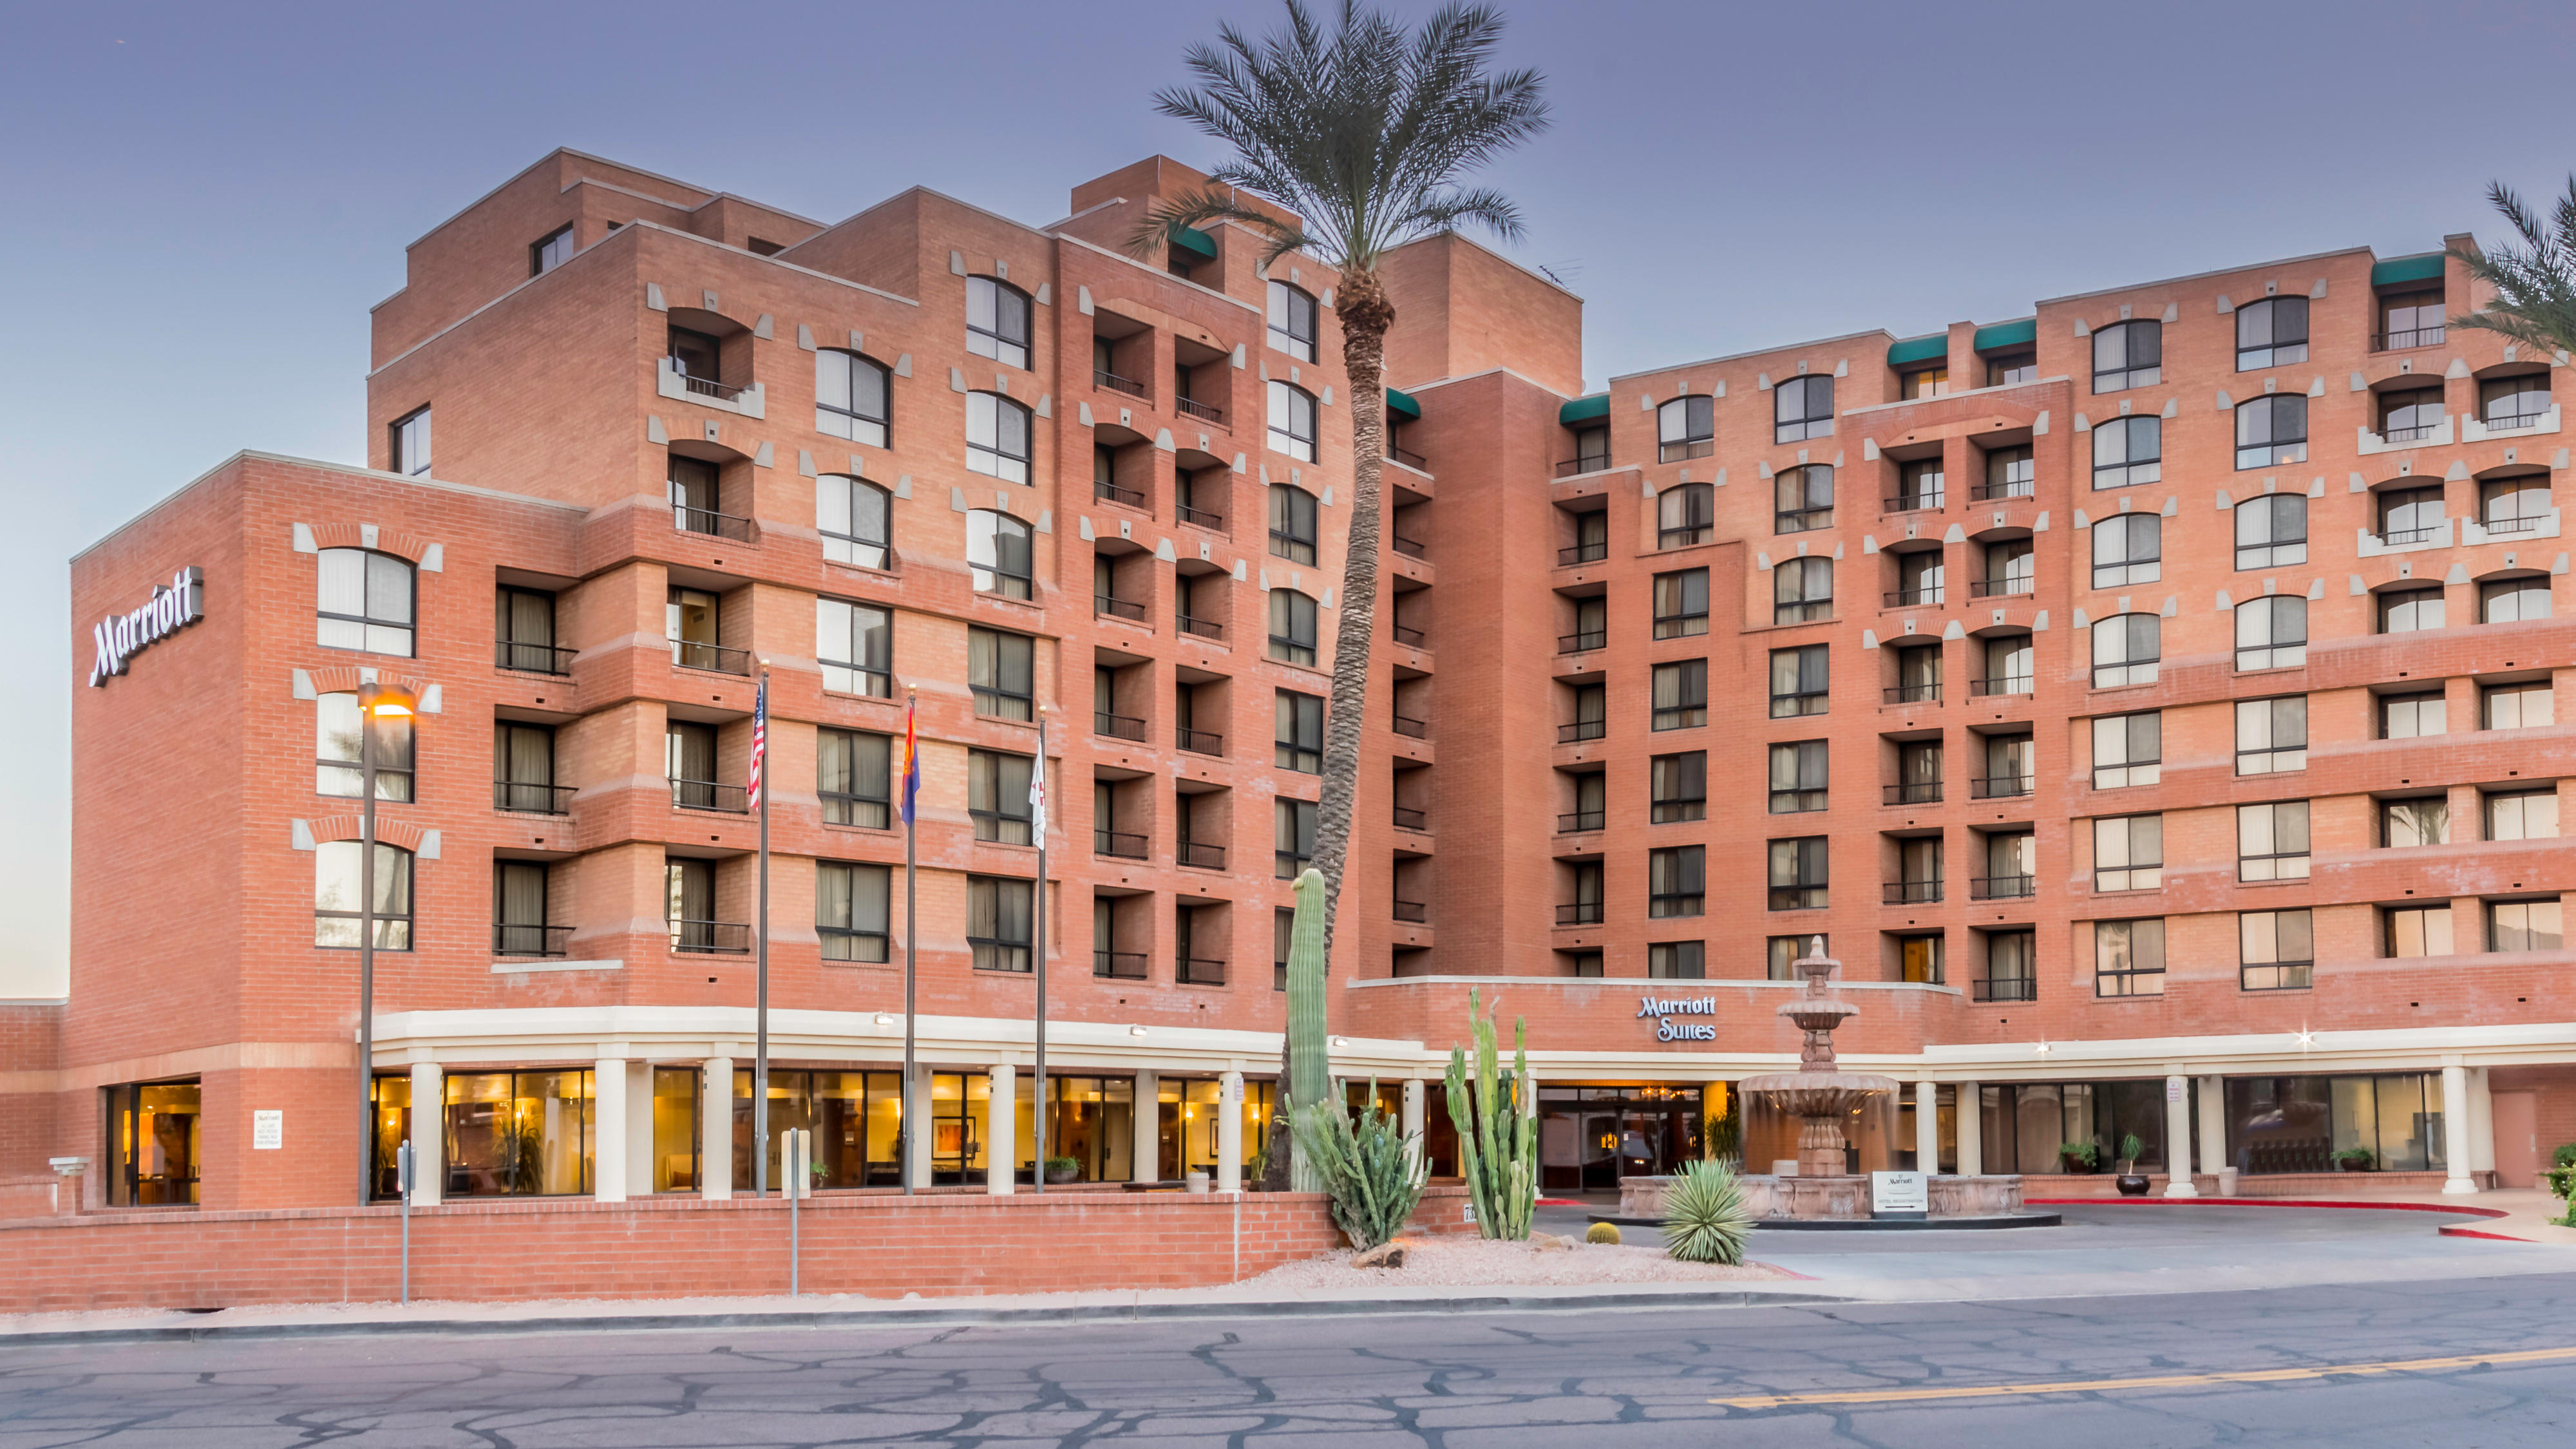 Marriott Suites Old Town Scottsdale Hotels